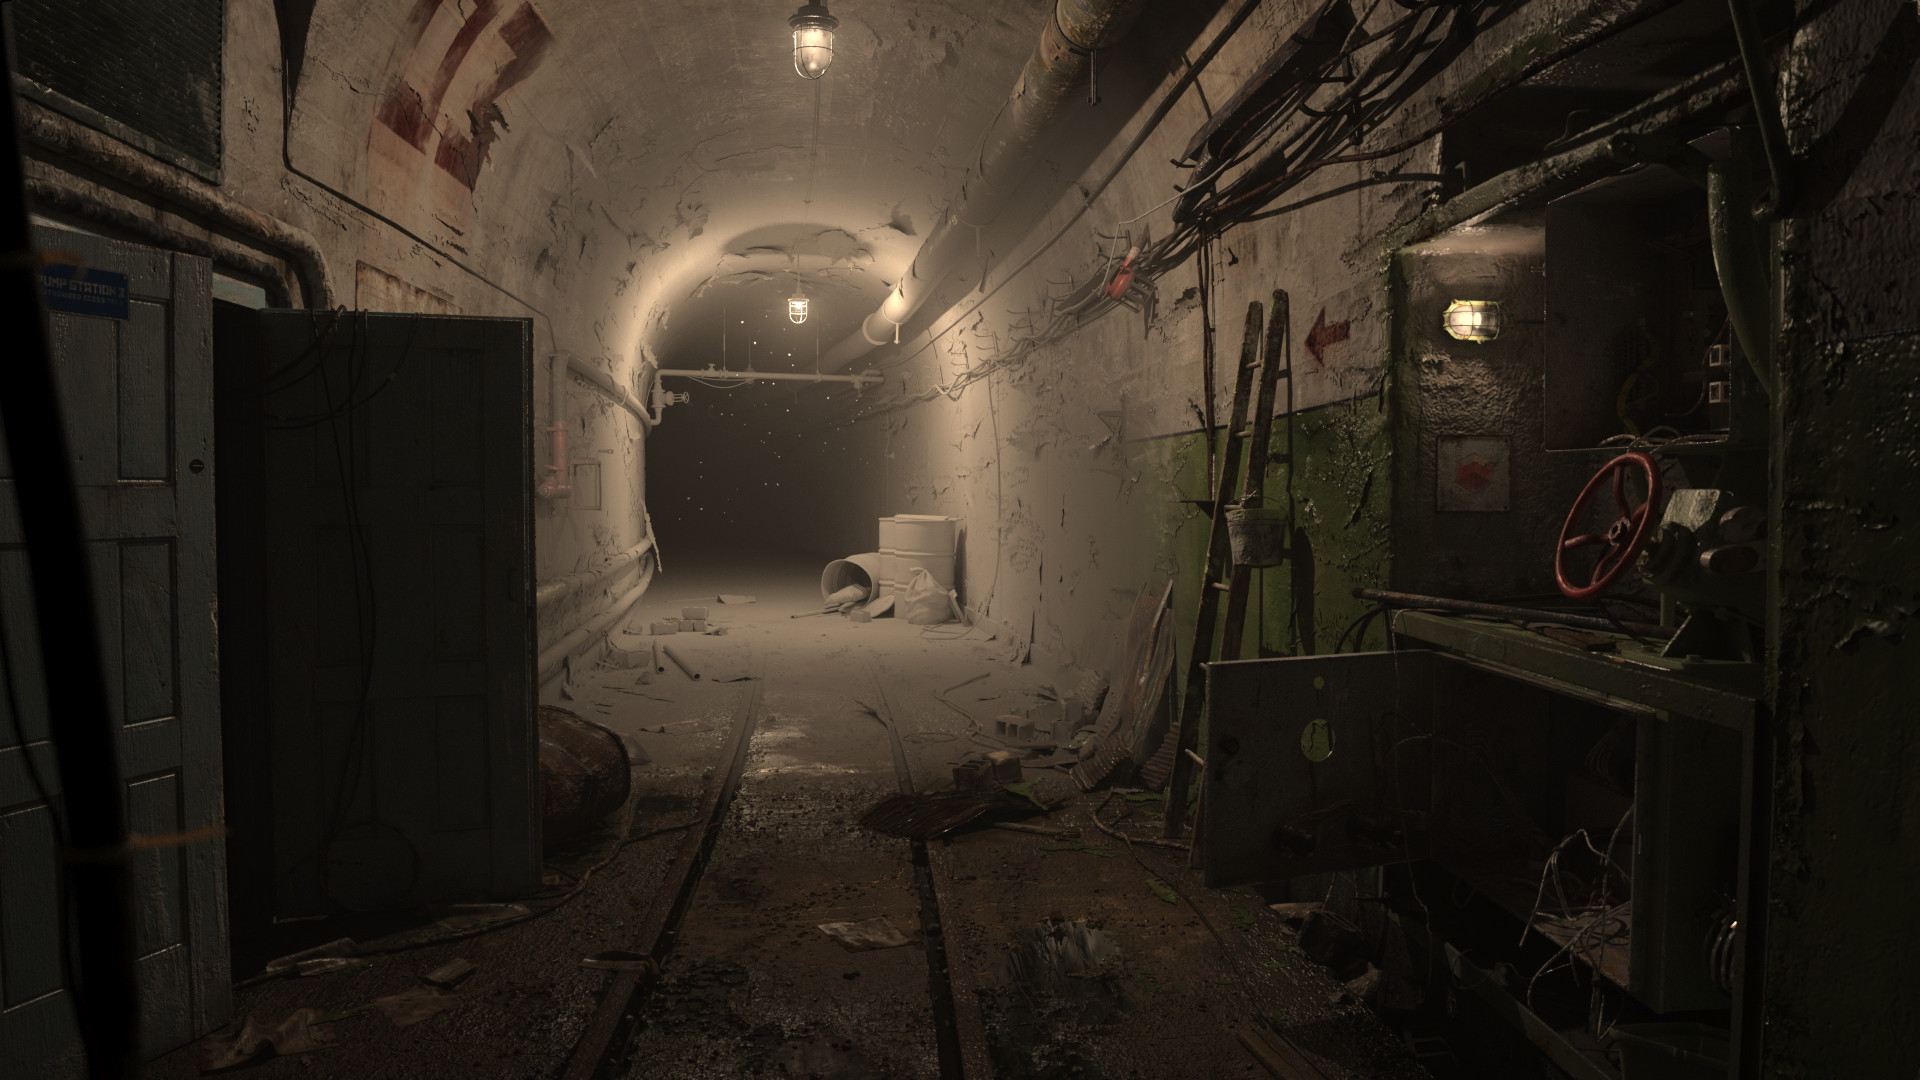 ArtStation - Redshift Benchmark scene competition entry: The